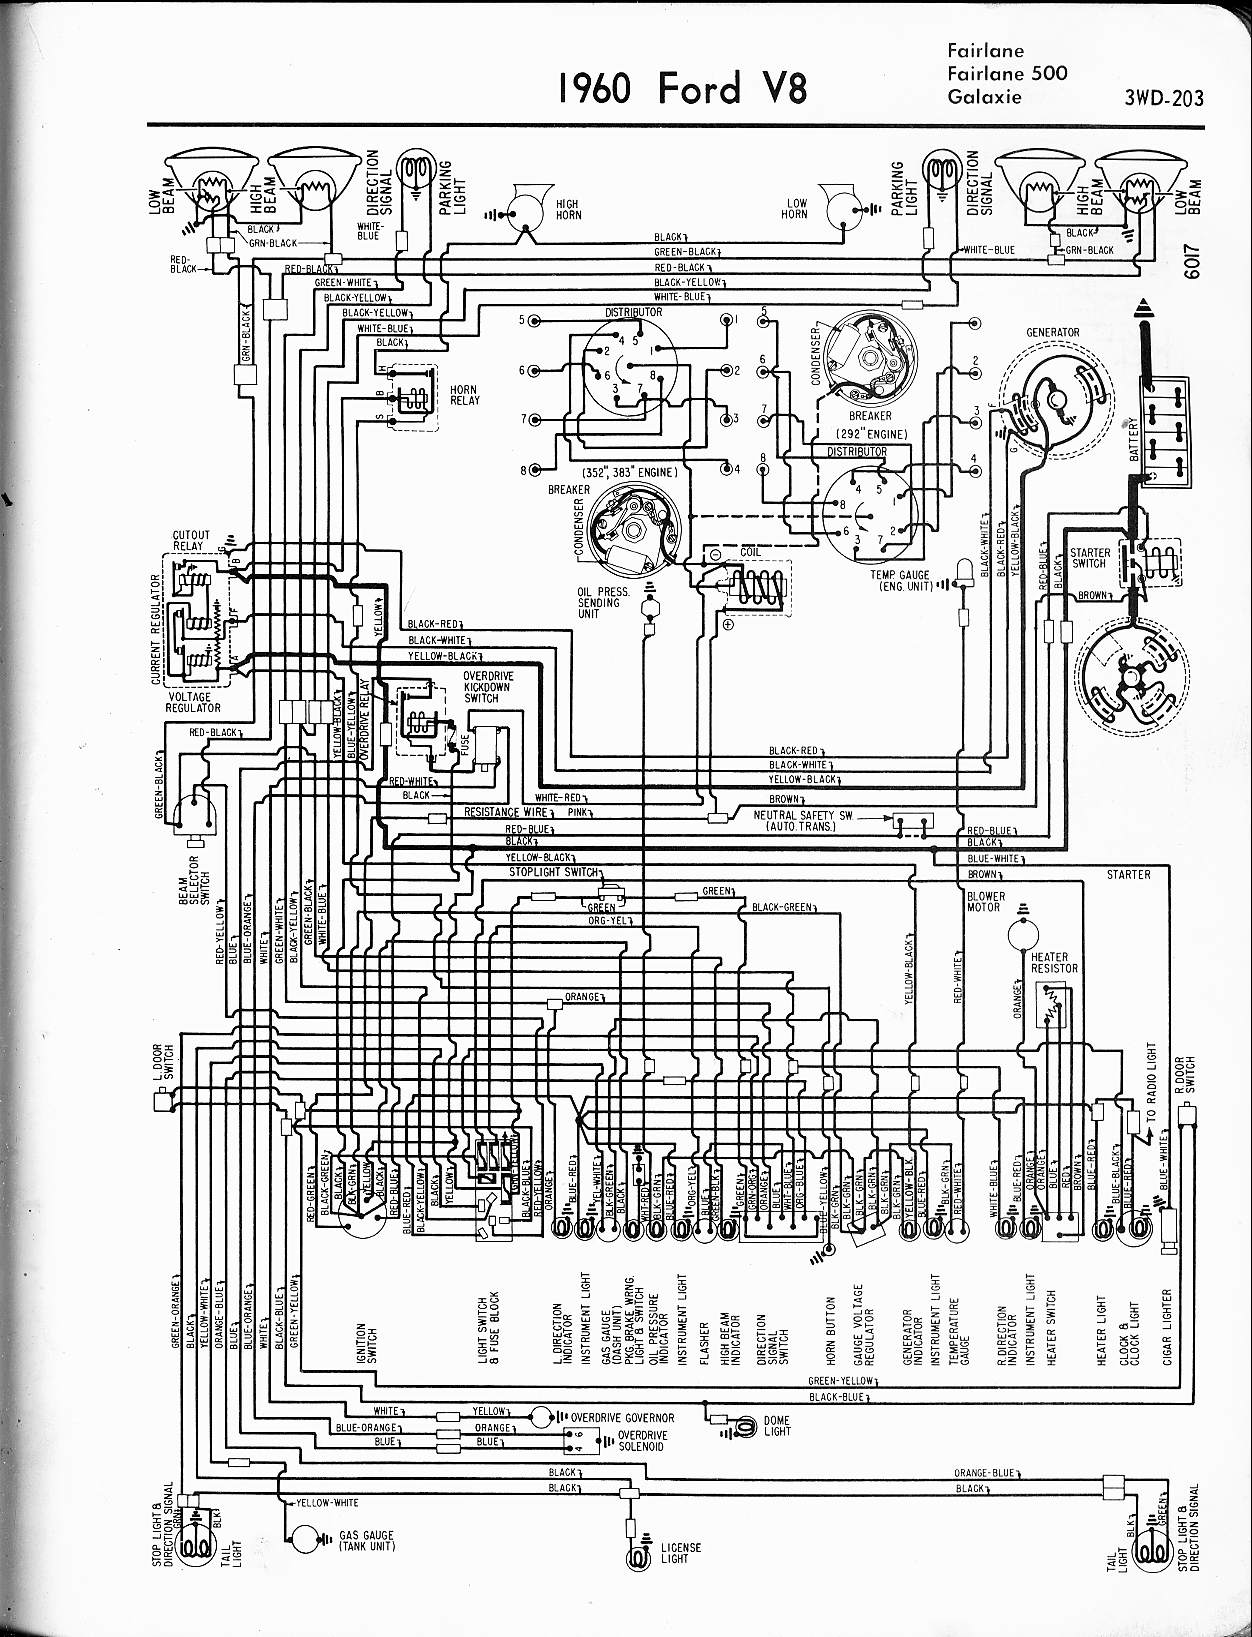 Ford Truck Lifted On Ignition Switch Wiring Diagram 72 Ford Torino